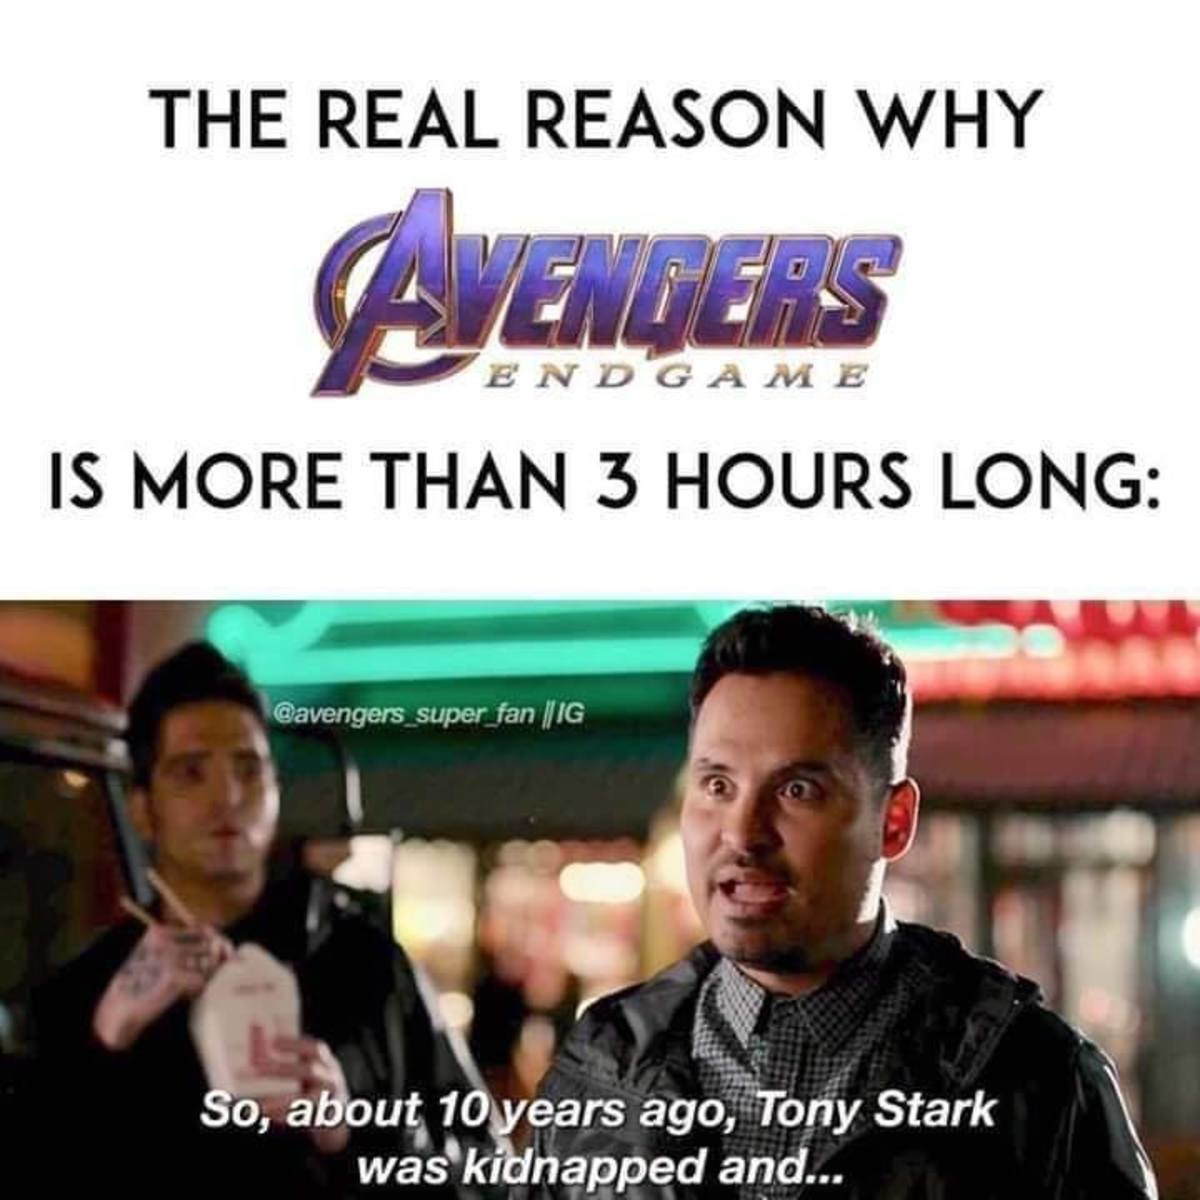 vengeful aboard tacit Yak. .. Avengers is not 3 hours long. it is only 15 minutes long for me. because I left within 15 minutes.